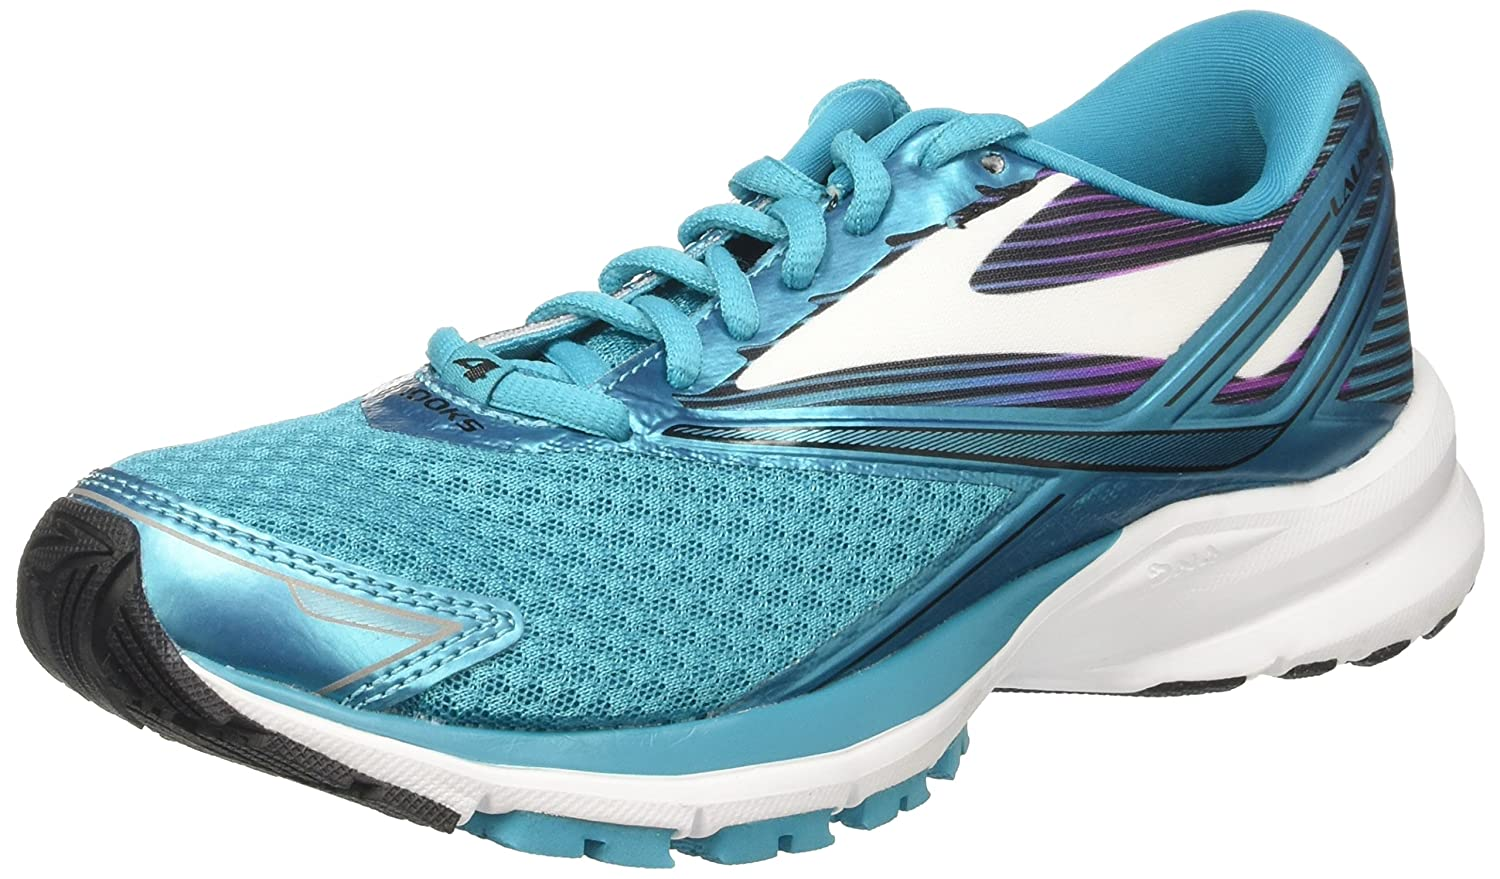 Teal Victory White Black Brooks Women's Ghost 11 Running shoes